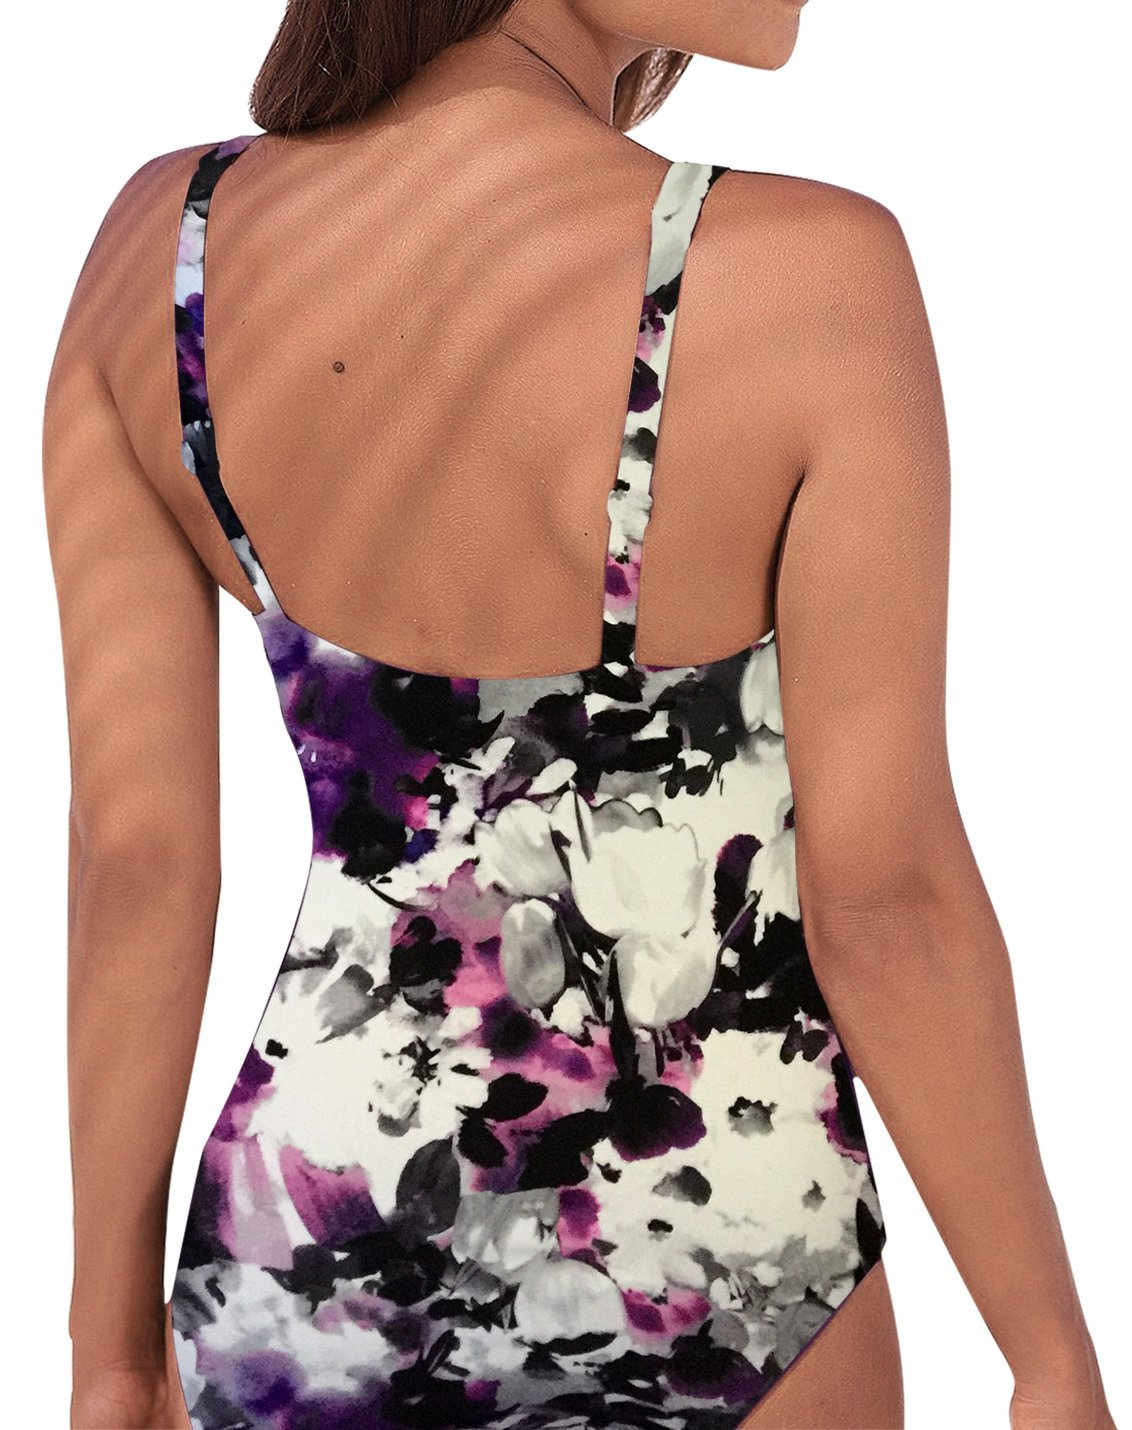 Upopby Women's Vintage Tummy Control One Piece Swimsuits Monokini Printed Plus Size Swimwear Bathing Suits Purple Floral 12 by Upopby (Image #2)